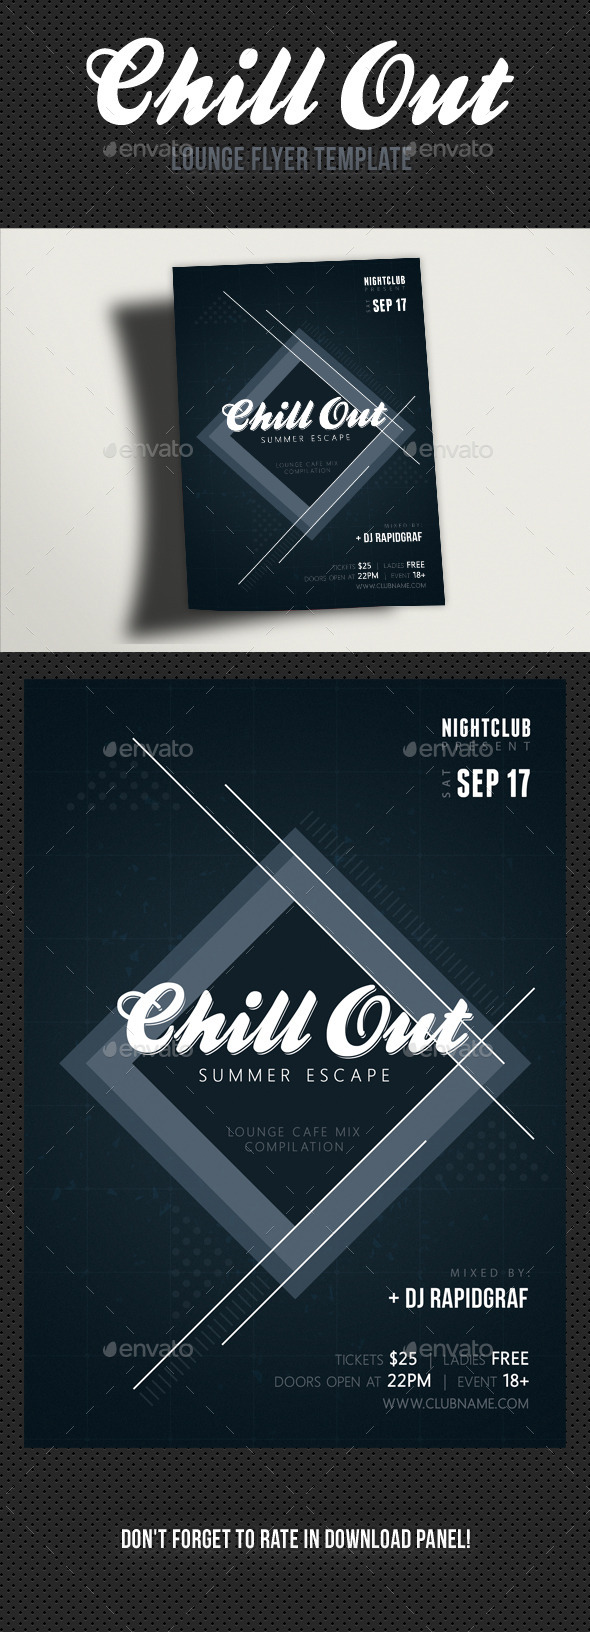 Chill Out Flyer - Clubs & Parties Events